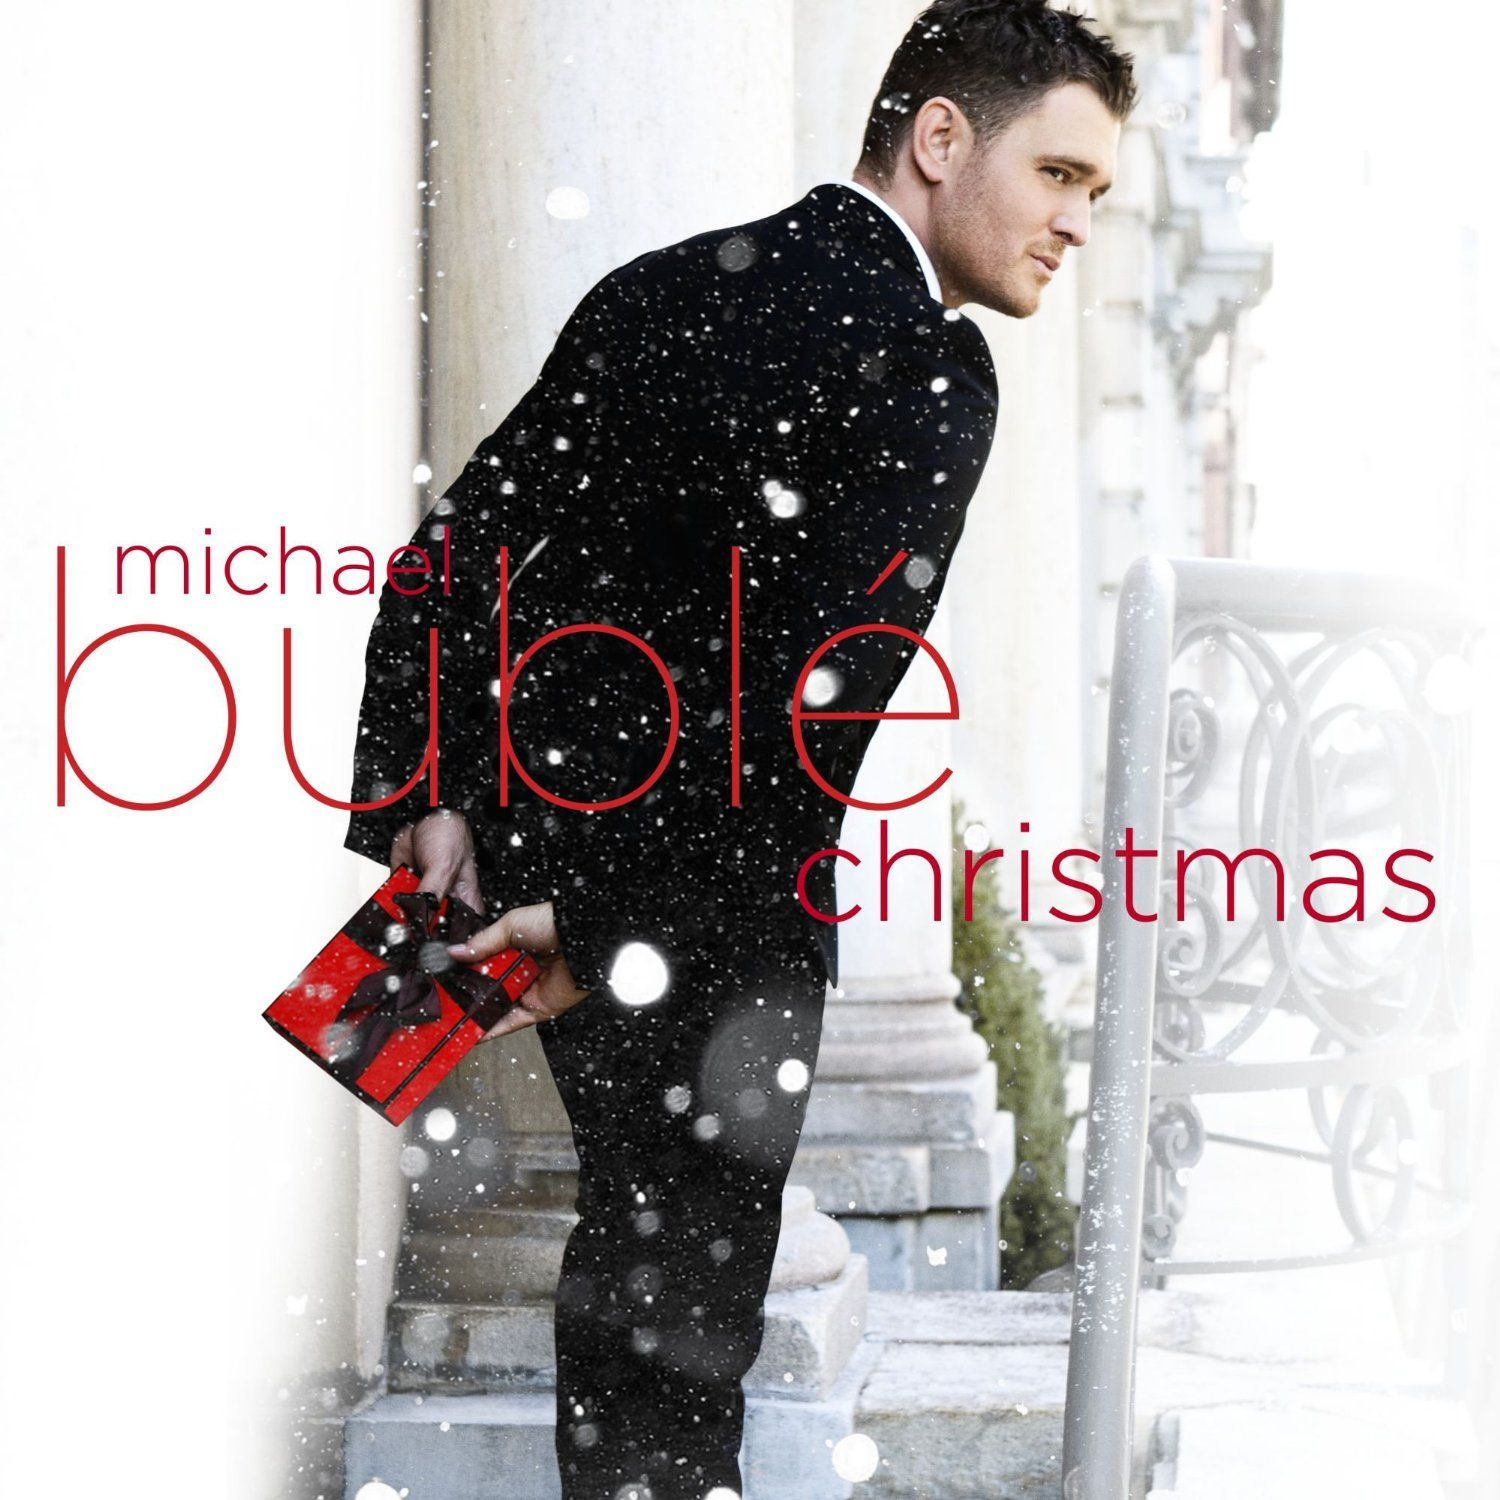 Michael Bublé - Christmas album cover